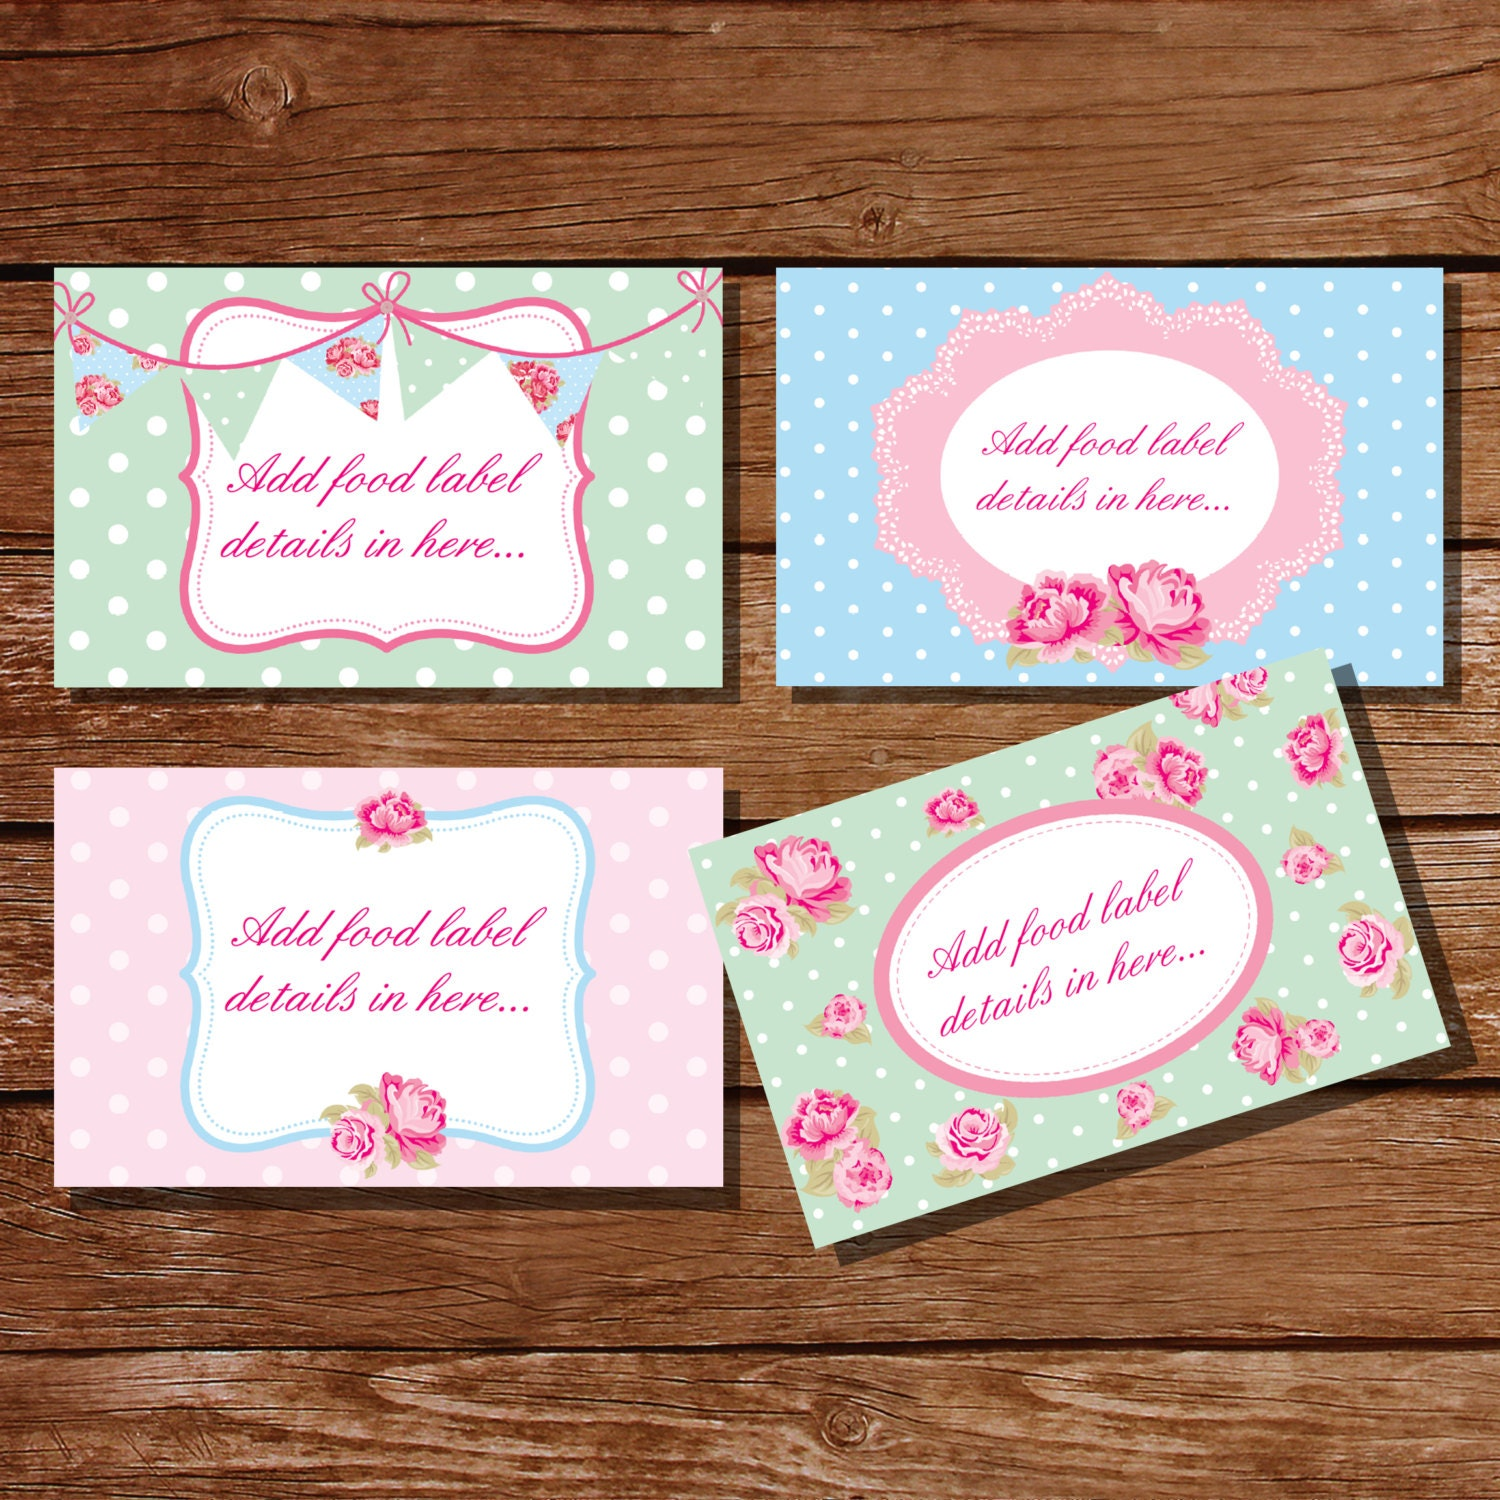 princess food labels shabby chic candy buffet cards food